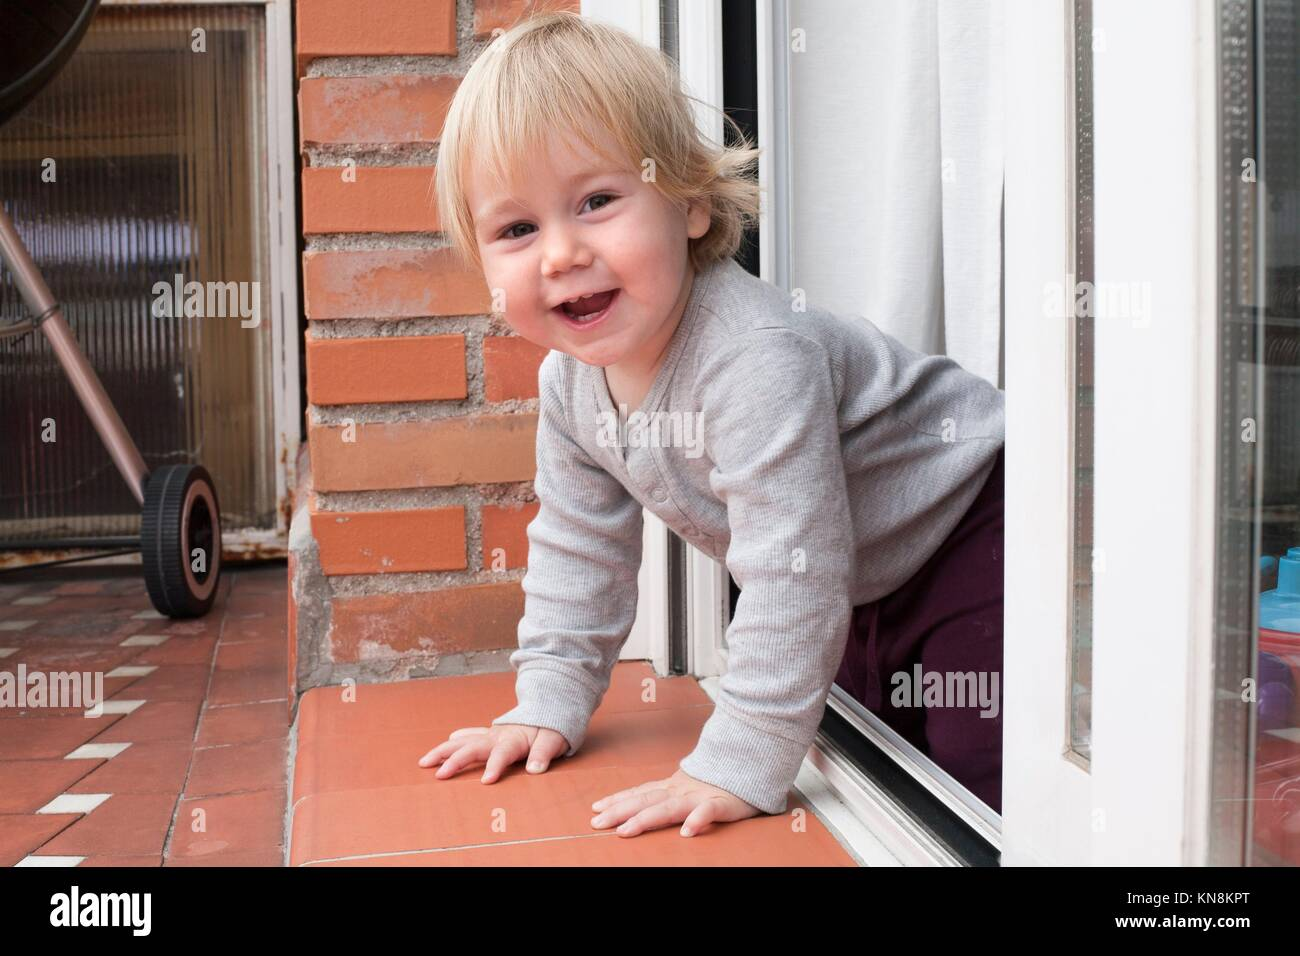 portrait of blonde caucasian baby nineteen month age chubby face looking at camera peering terrace floor supported Stock Photo